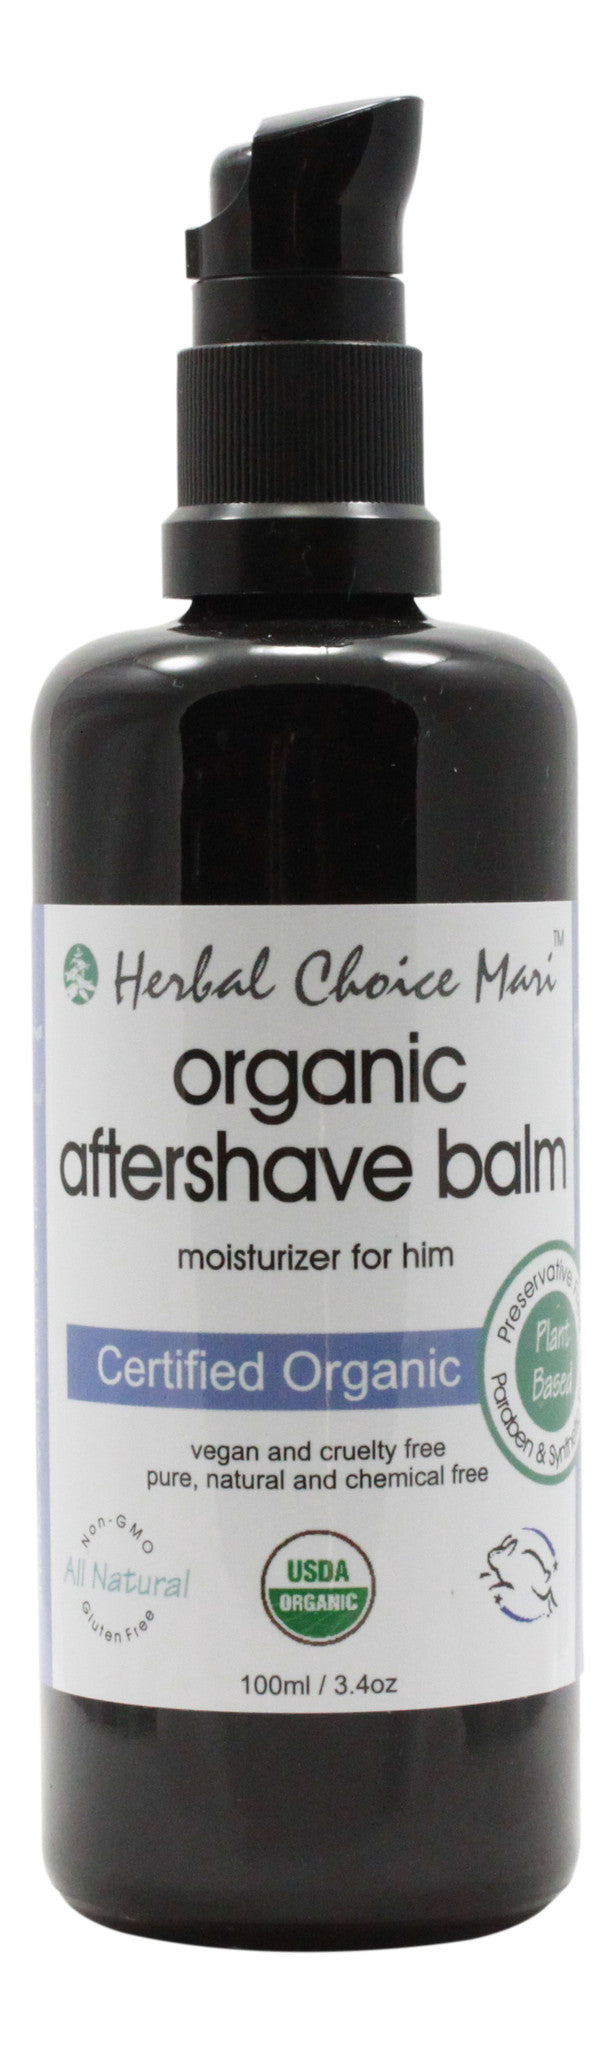 Organic Aftershave Balm Moisturizer For Him - 3.4 oz - Front